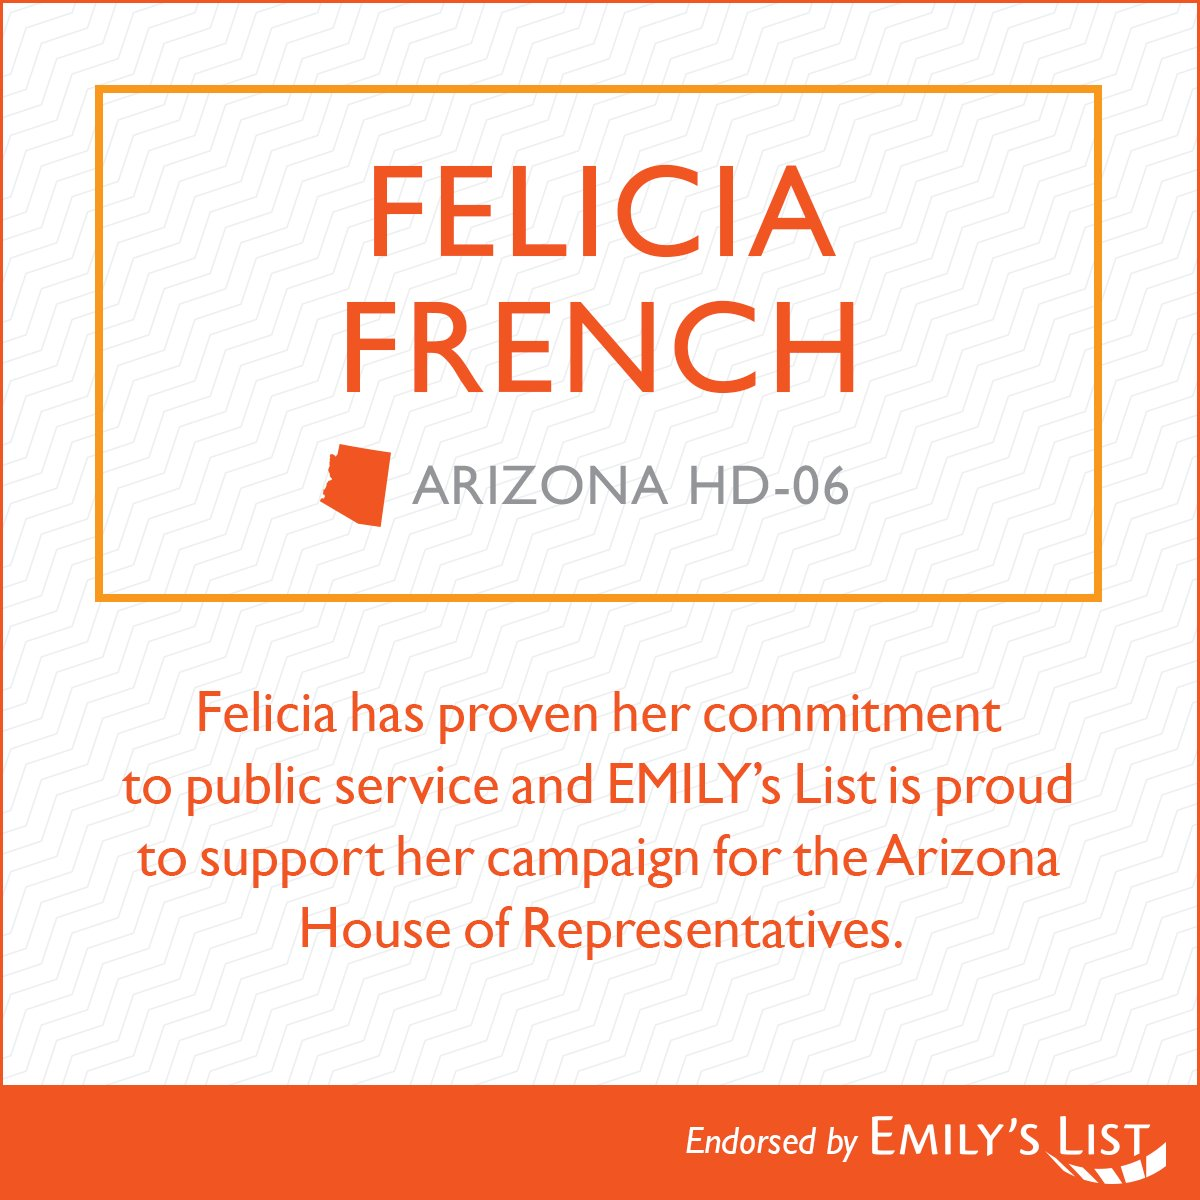 I am honored to be endorsed by @emilyslist who shares my support for #WomensRights.  Together with the #BlueWave2018, we will #GetOutTheVote in the #MidtermElections and flip the #AZhouse.<br>http://pic.twitter.com/Gre6zROM9E